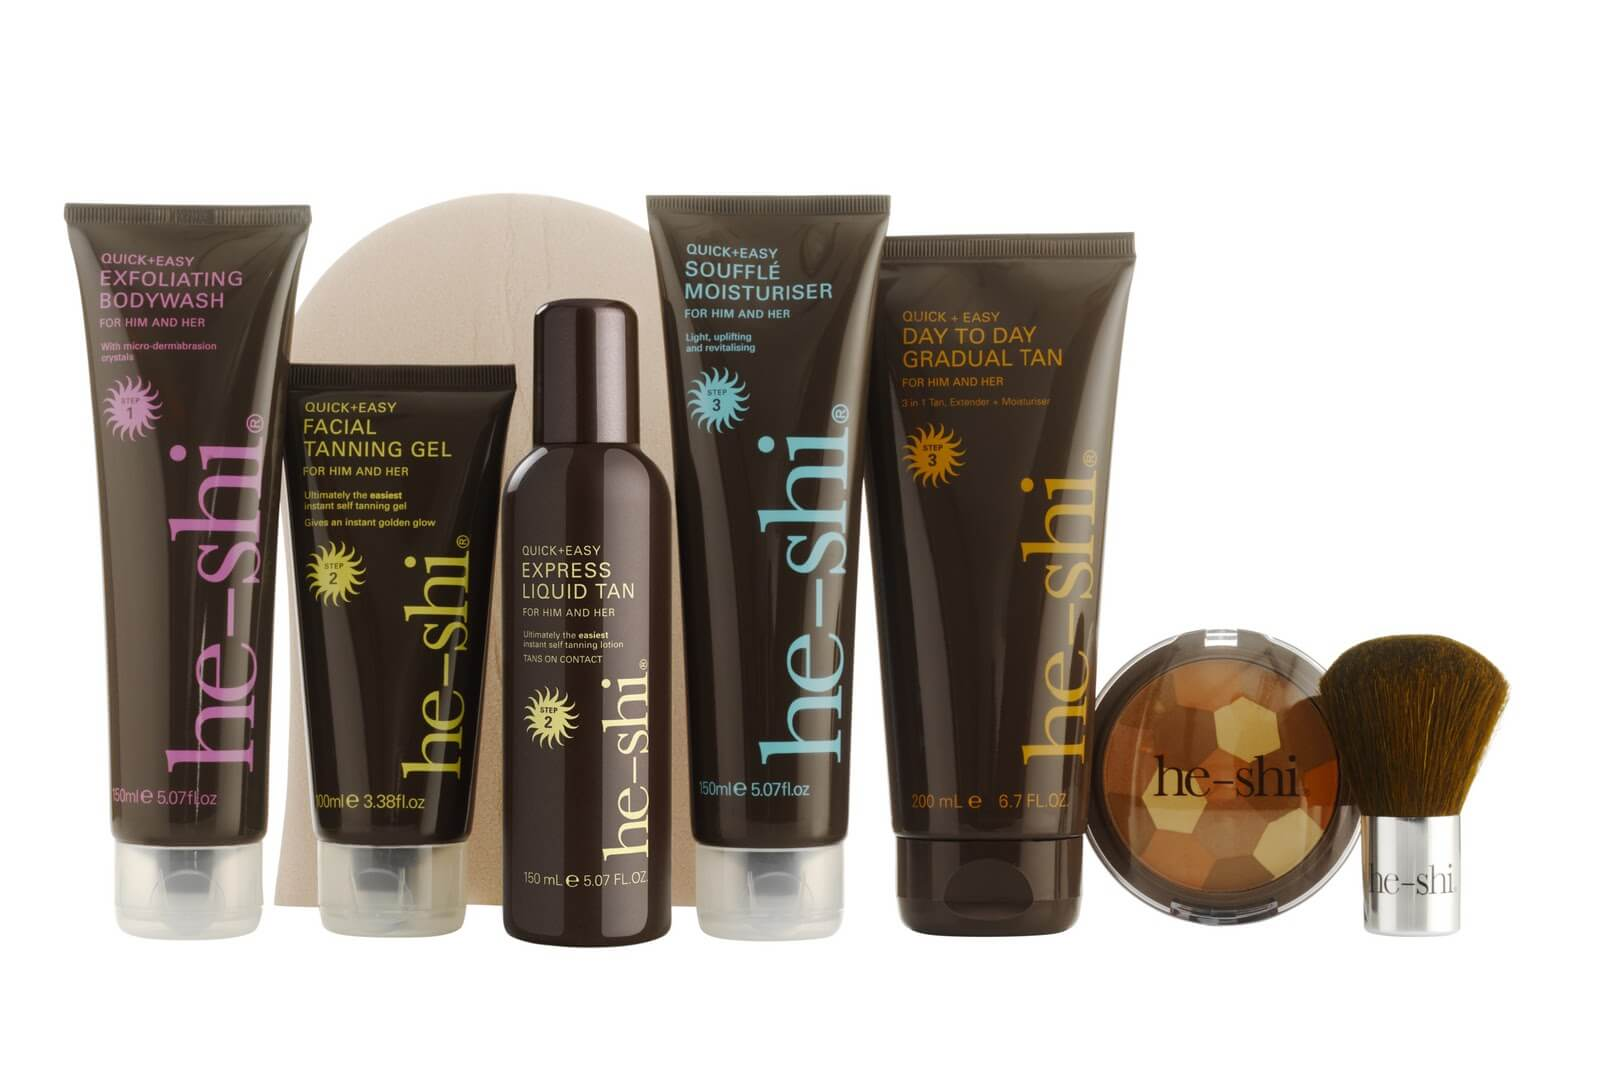 he-shi tanning collection